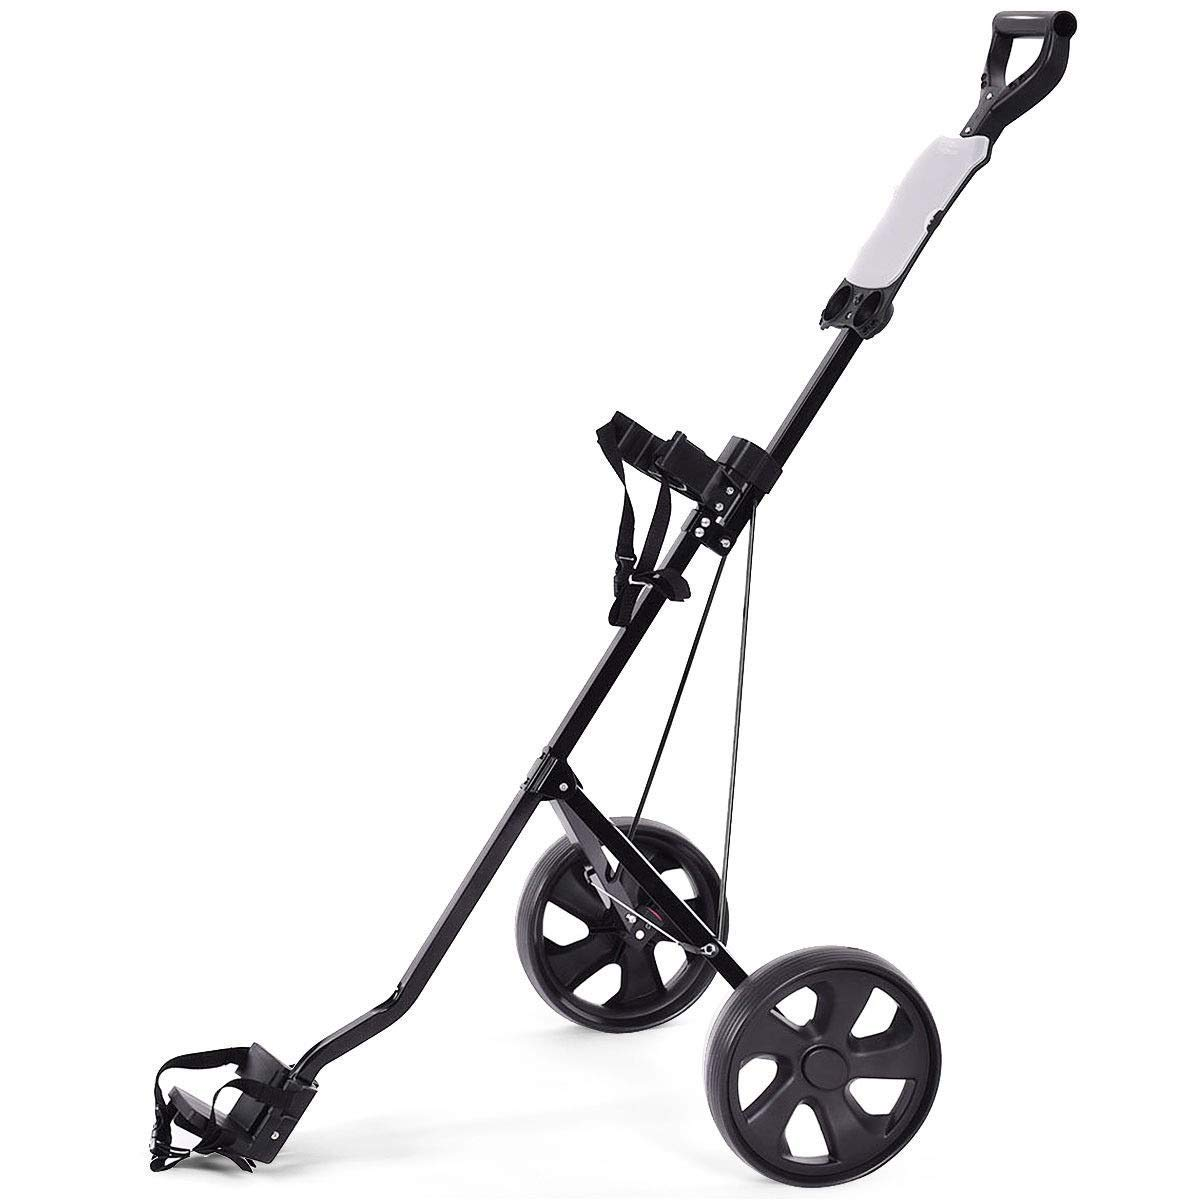 BeUniqueToday Folding 2 Wheels Push Pull Golf Cart Trolley w/Scoreboard, Folding 2 Wheels Push Pull Golf Cart Trolley with Functional Foot Operated Brakes, Golf Cart Trolley